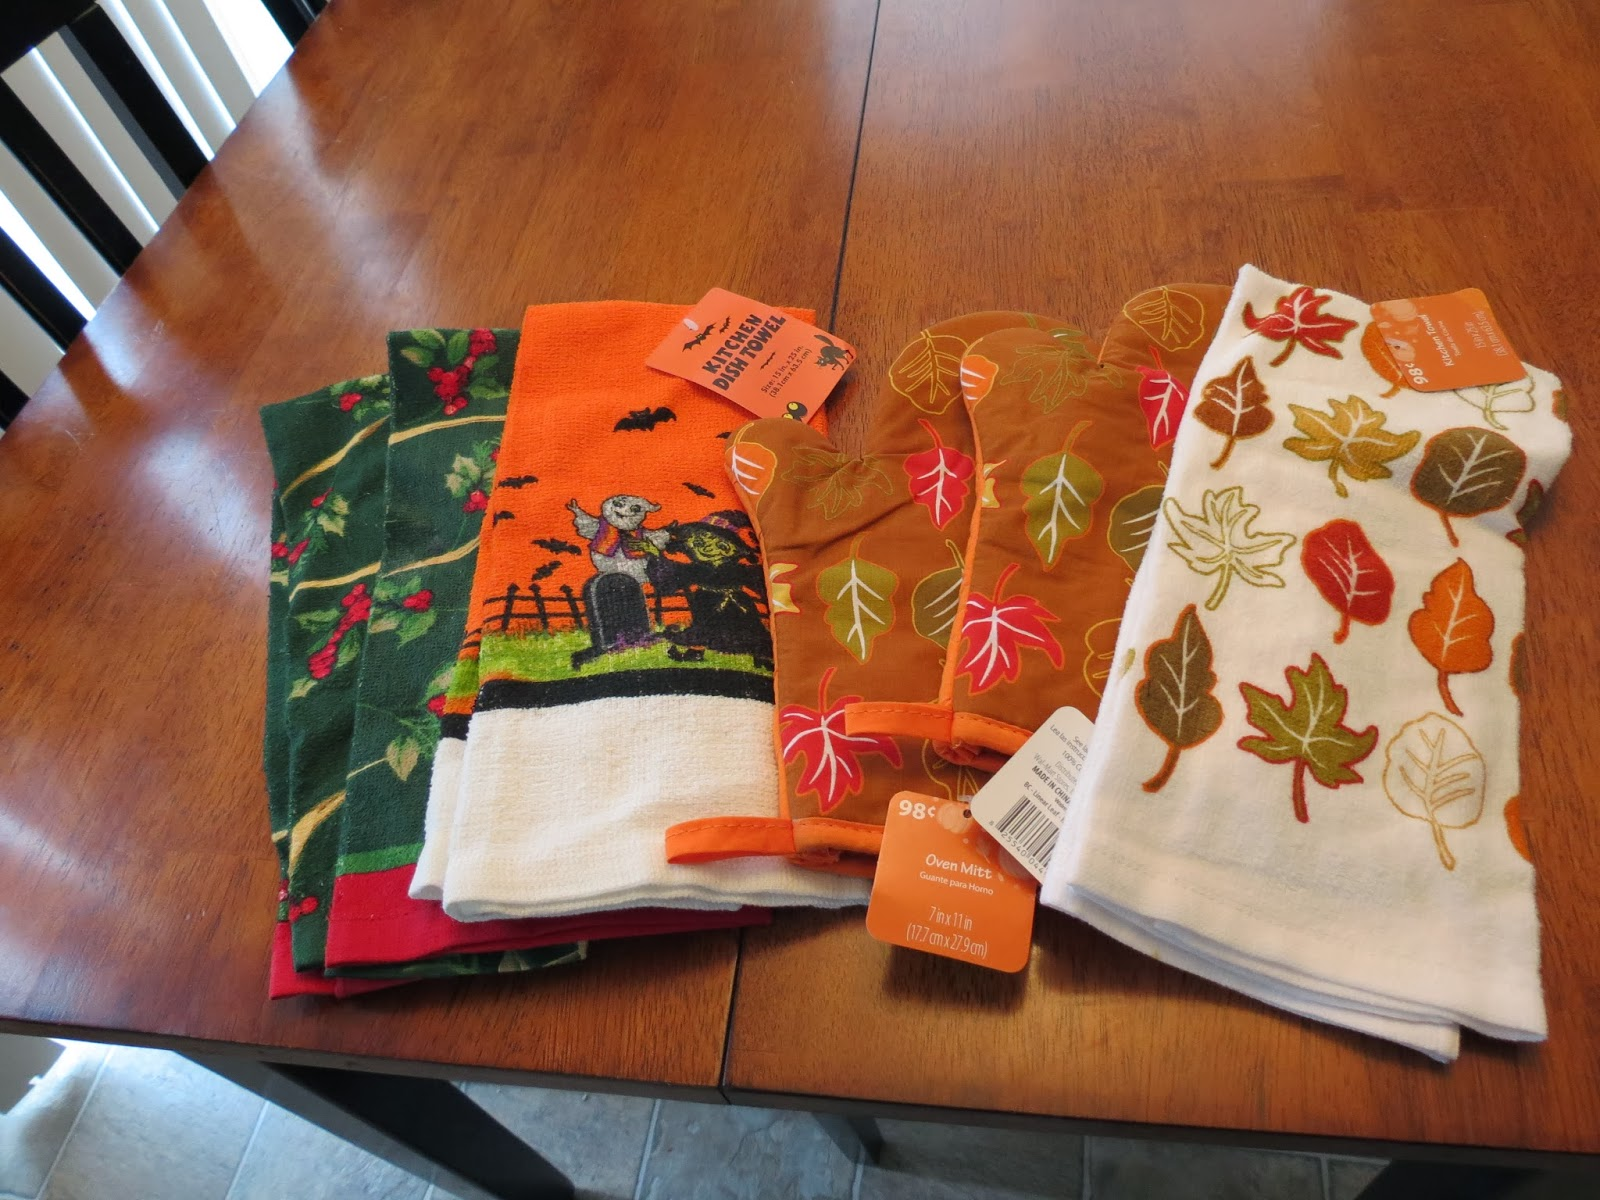 Seasonal Kitchen Towels (Brand New W/ Tags): $2 For All